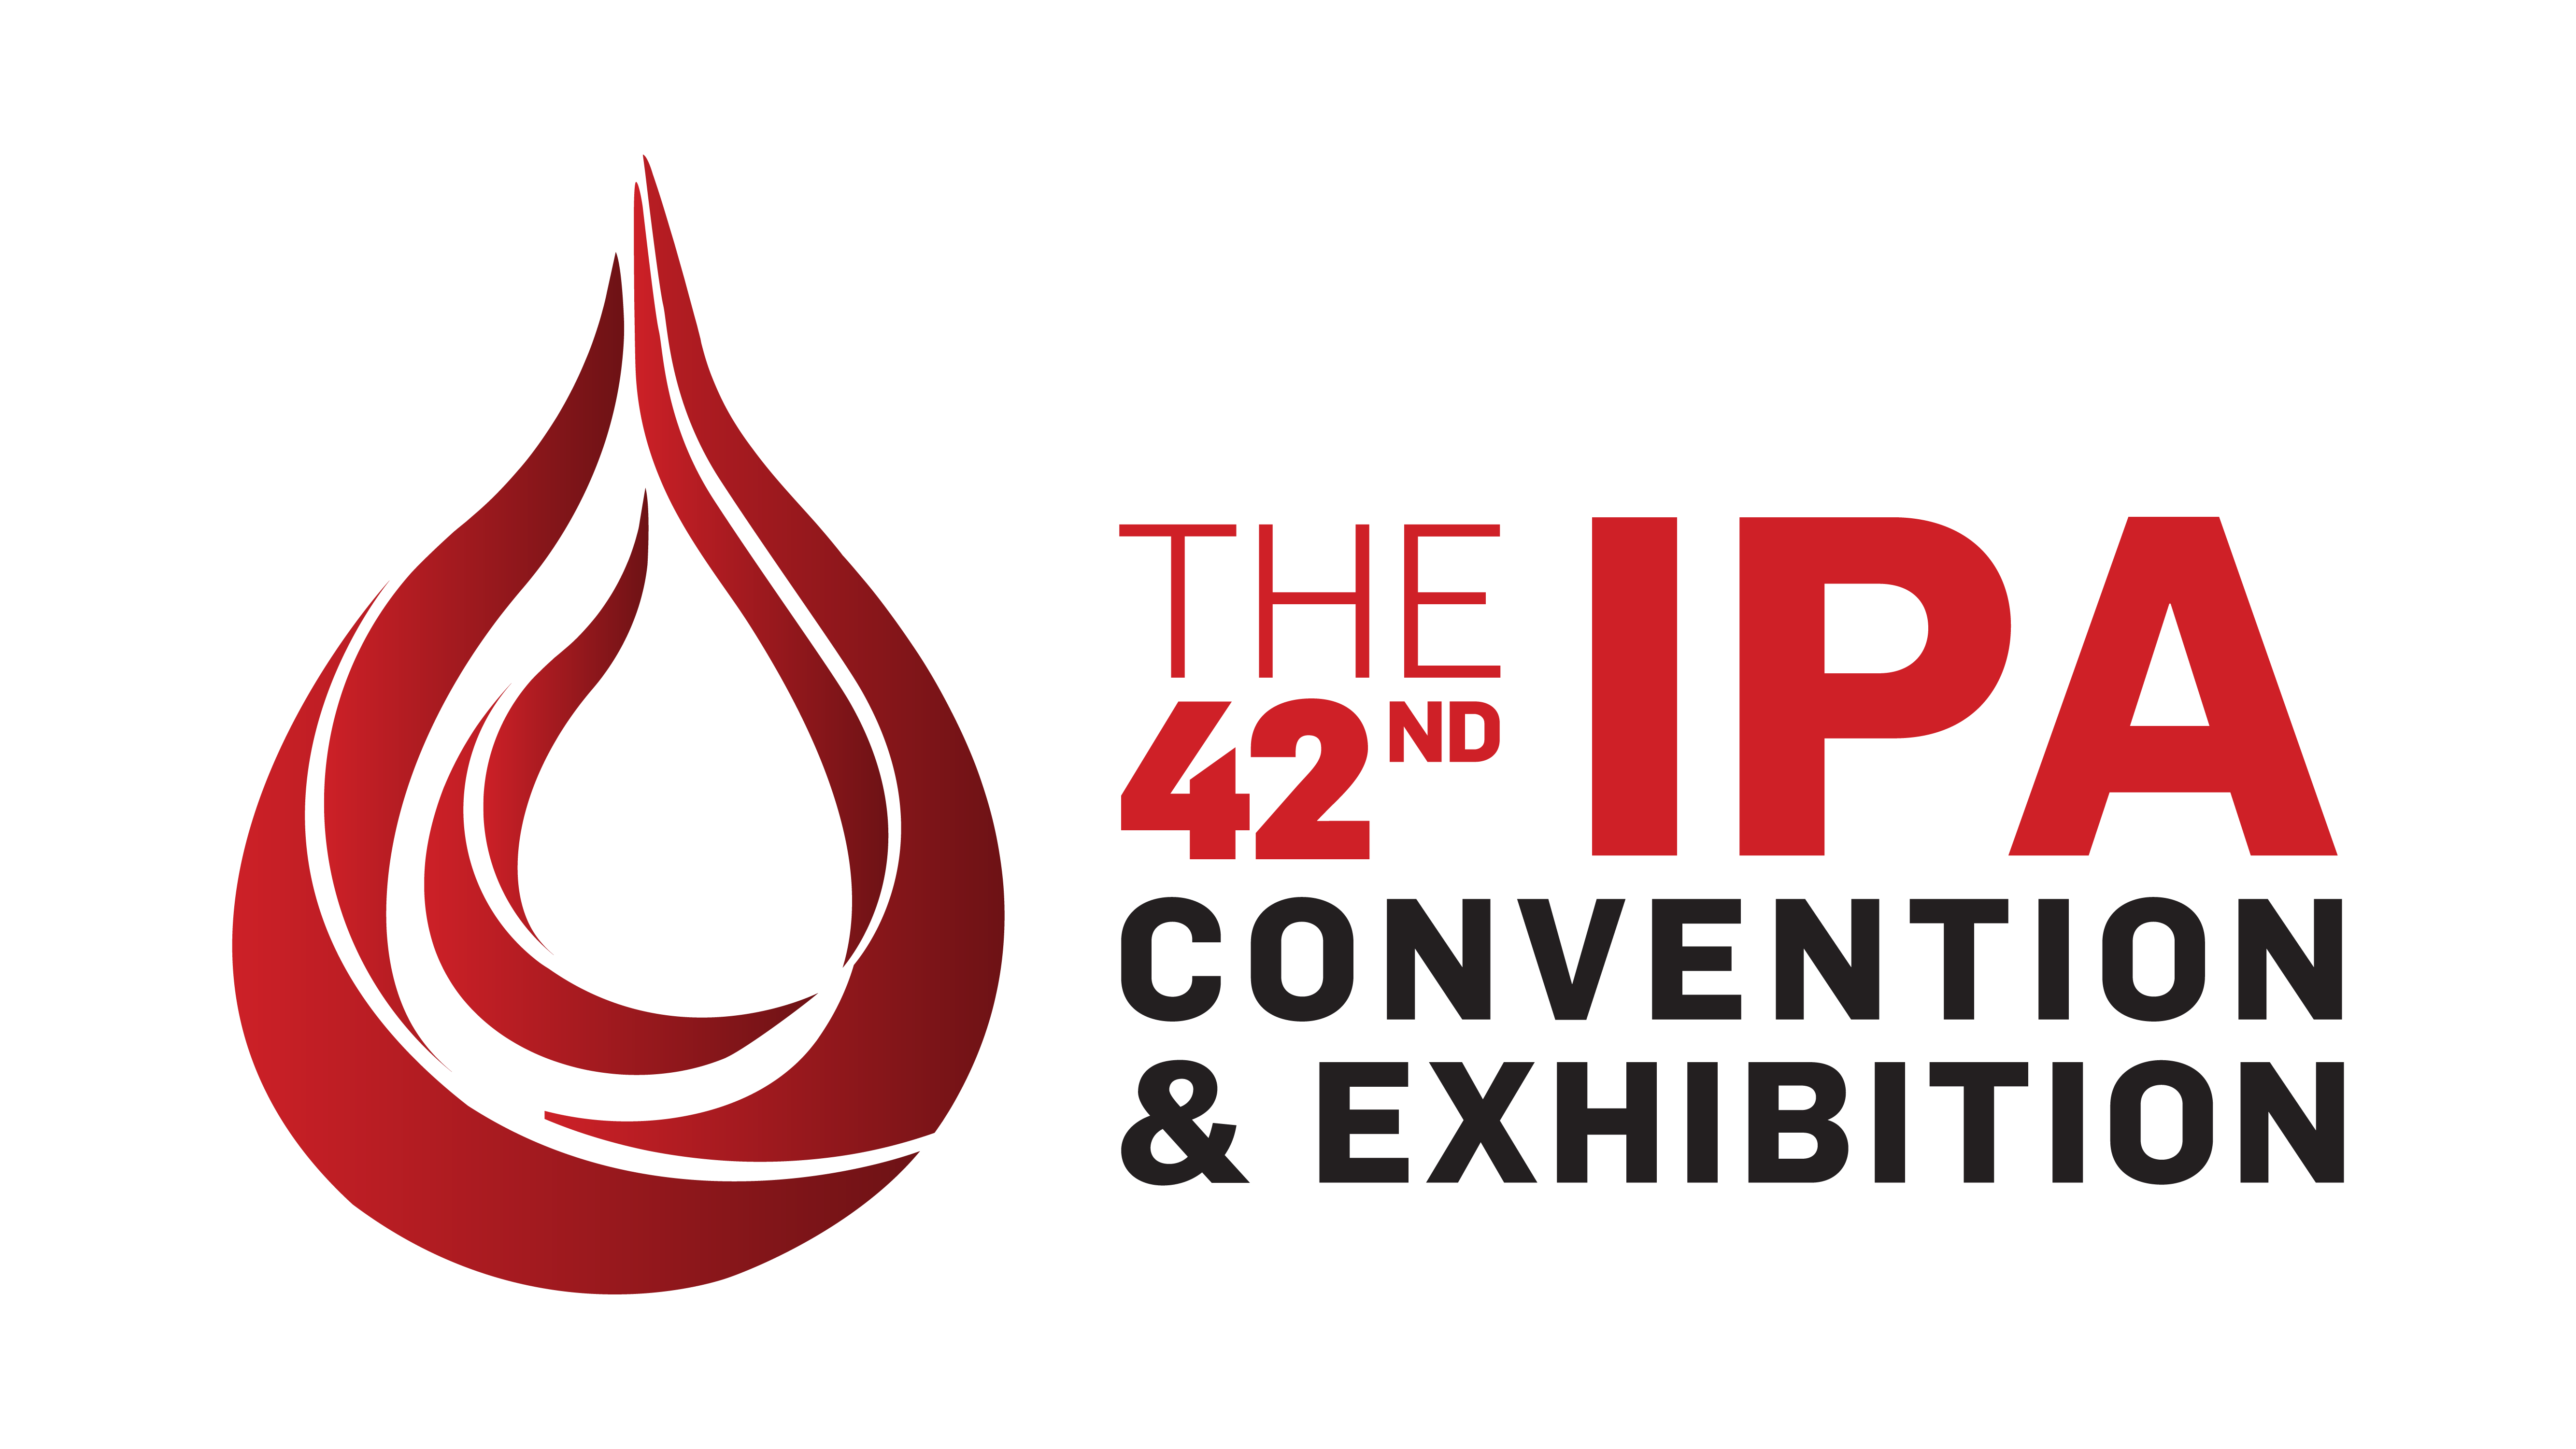 The 42nd Indonesian Petroleum Assosiation (IPA) Convention & Exhibition 2018